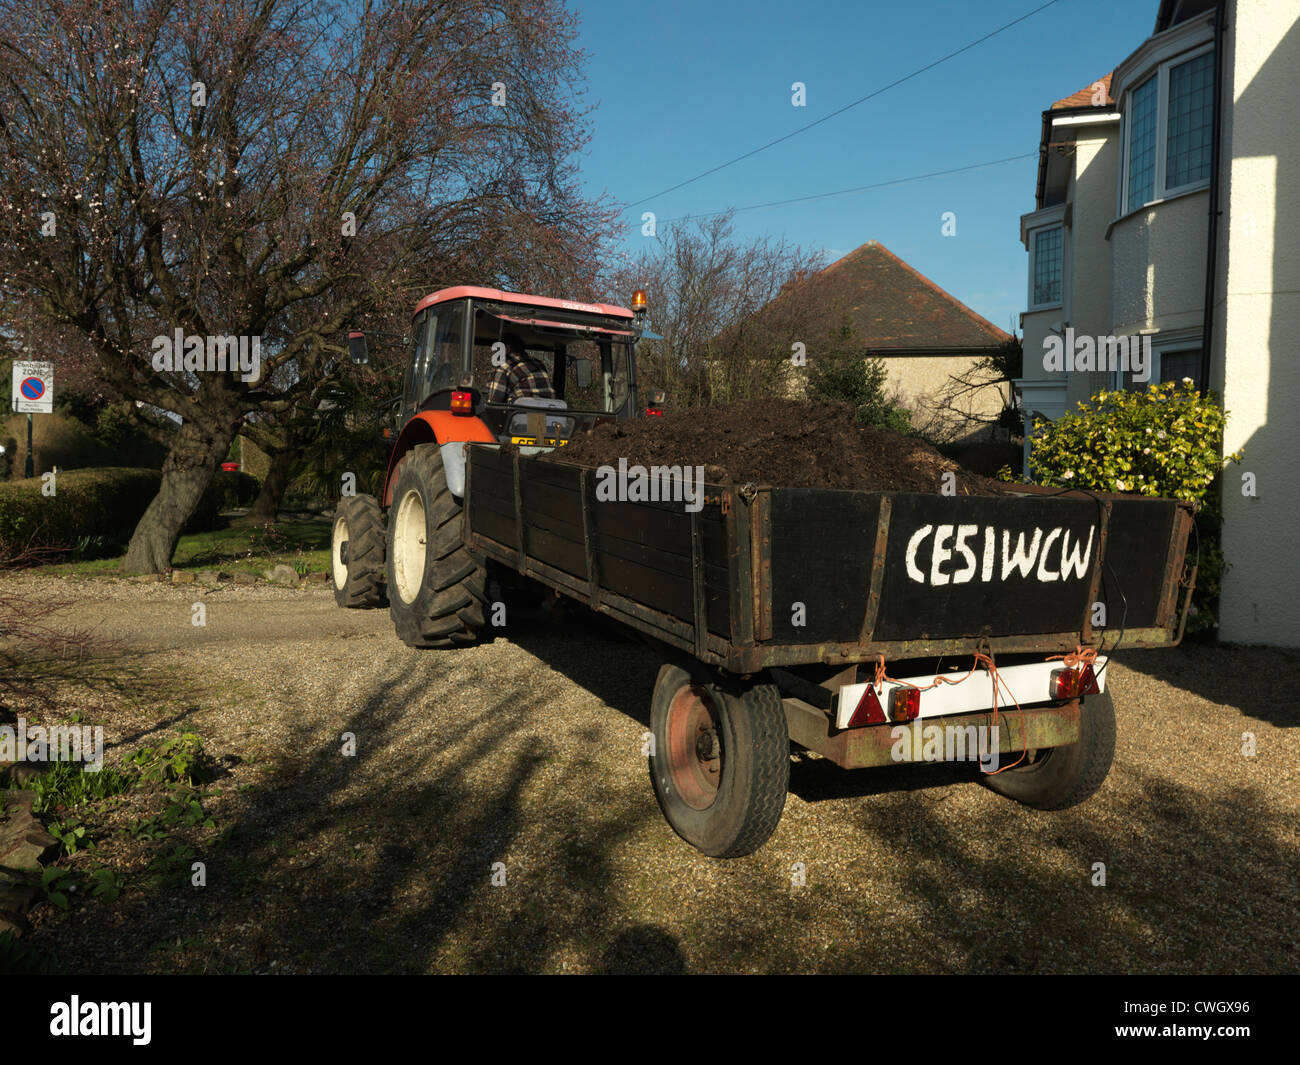 Tractor Delivering Manure For Garden Surrey England Stock Photo